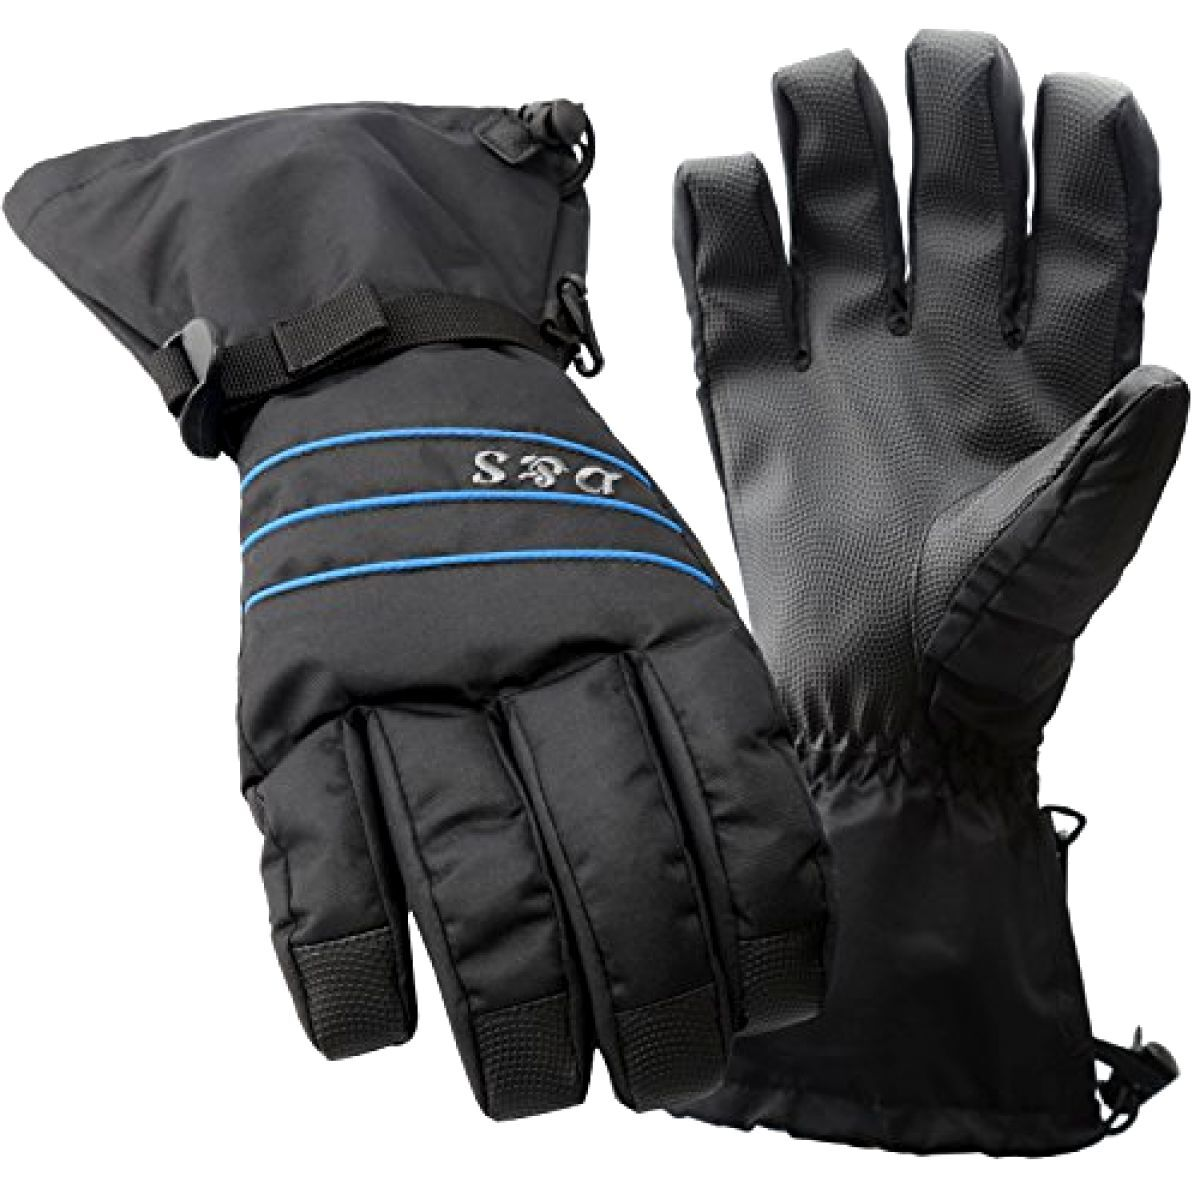 Cold Weather Gloves for Men Air Vent YND Waterproof Ski Snowboard Gloves with button